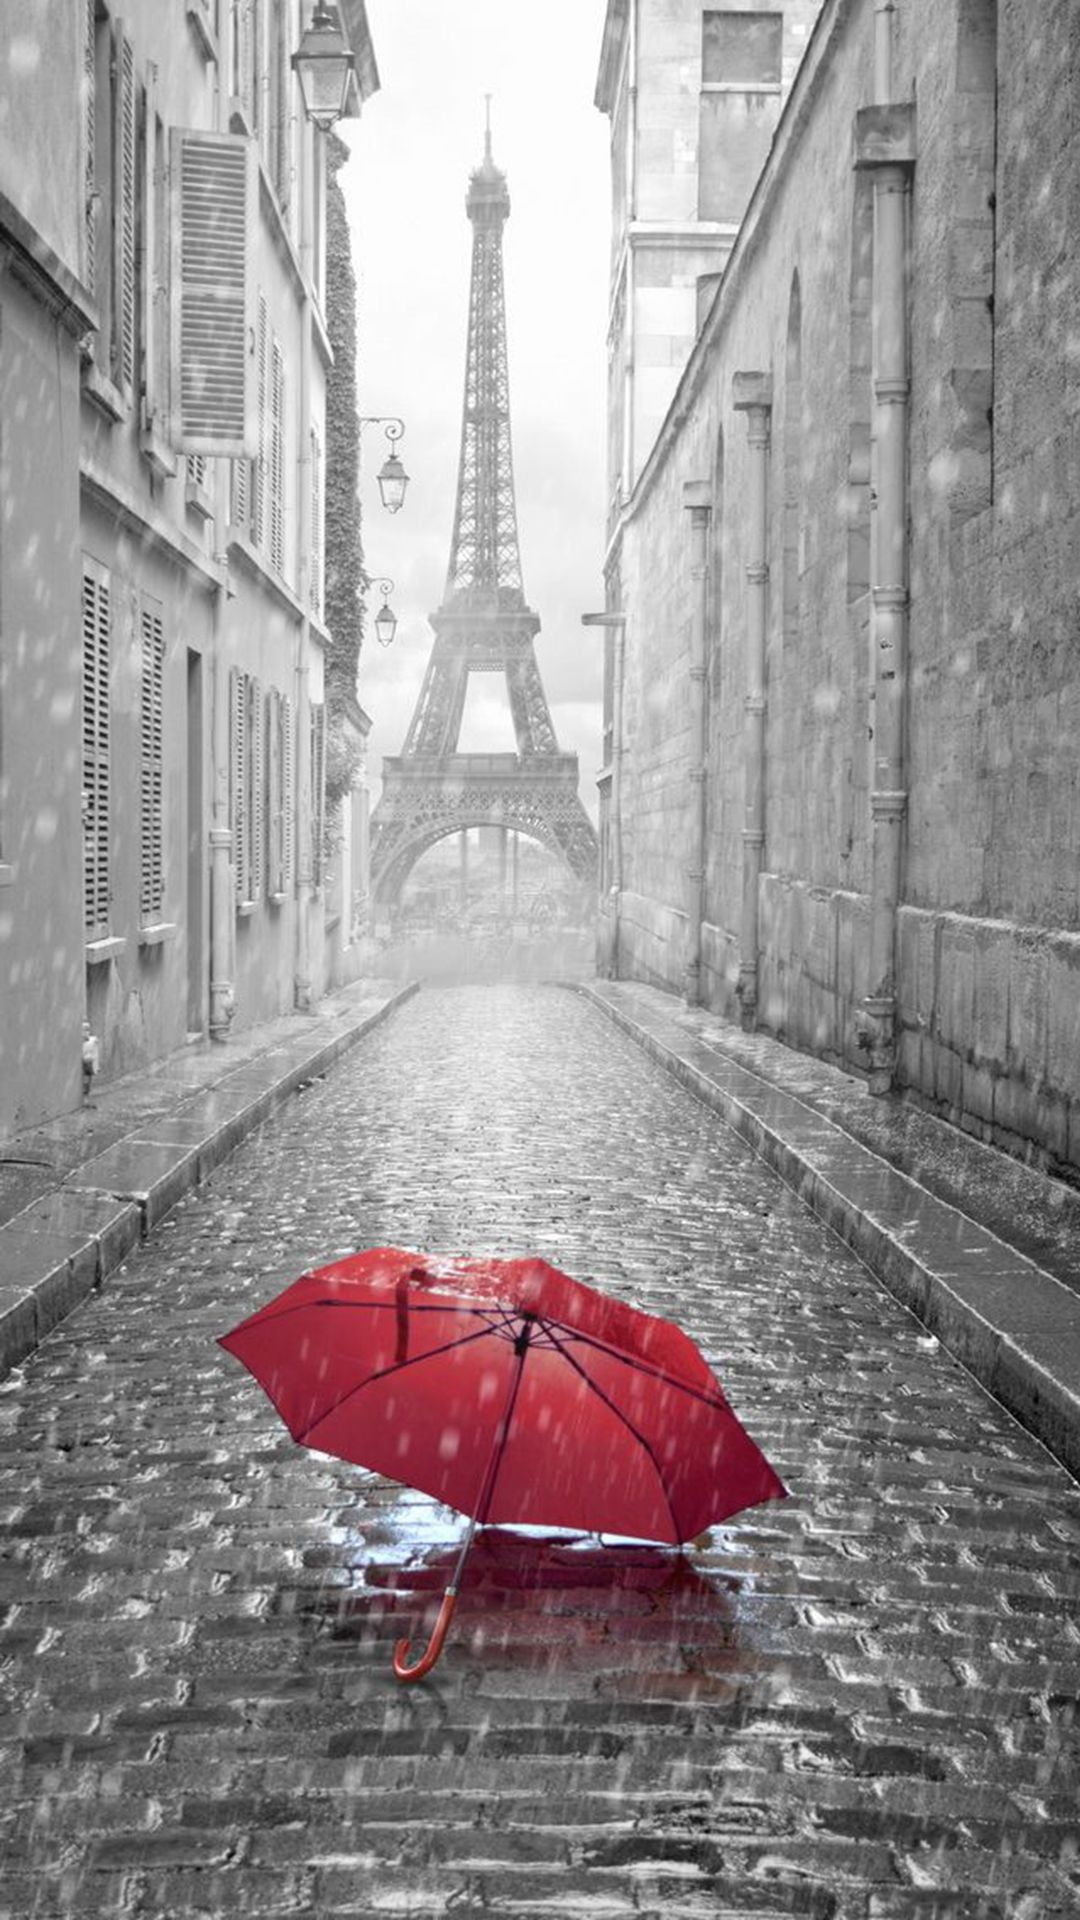 Red Umbrella Paris Street Rainy Day Eiffel Tower IPhone 6 Wallpaper